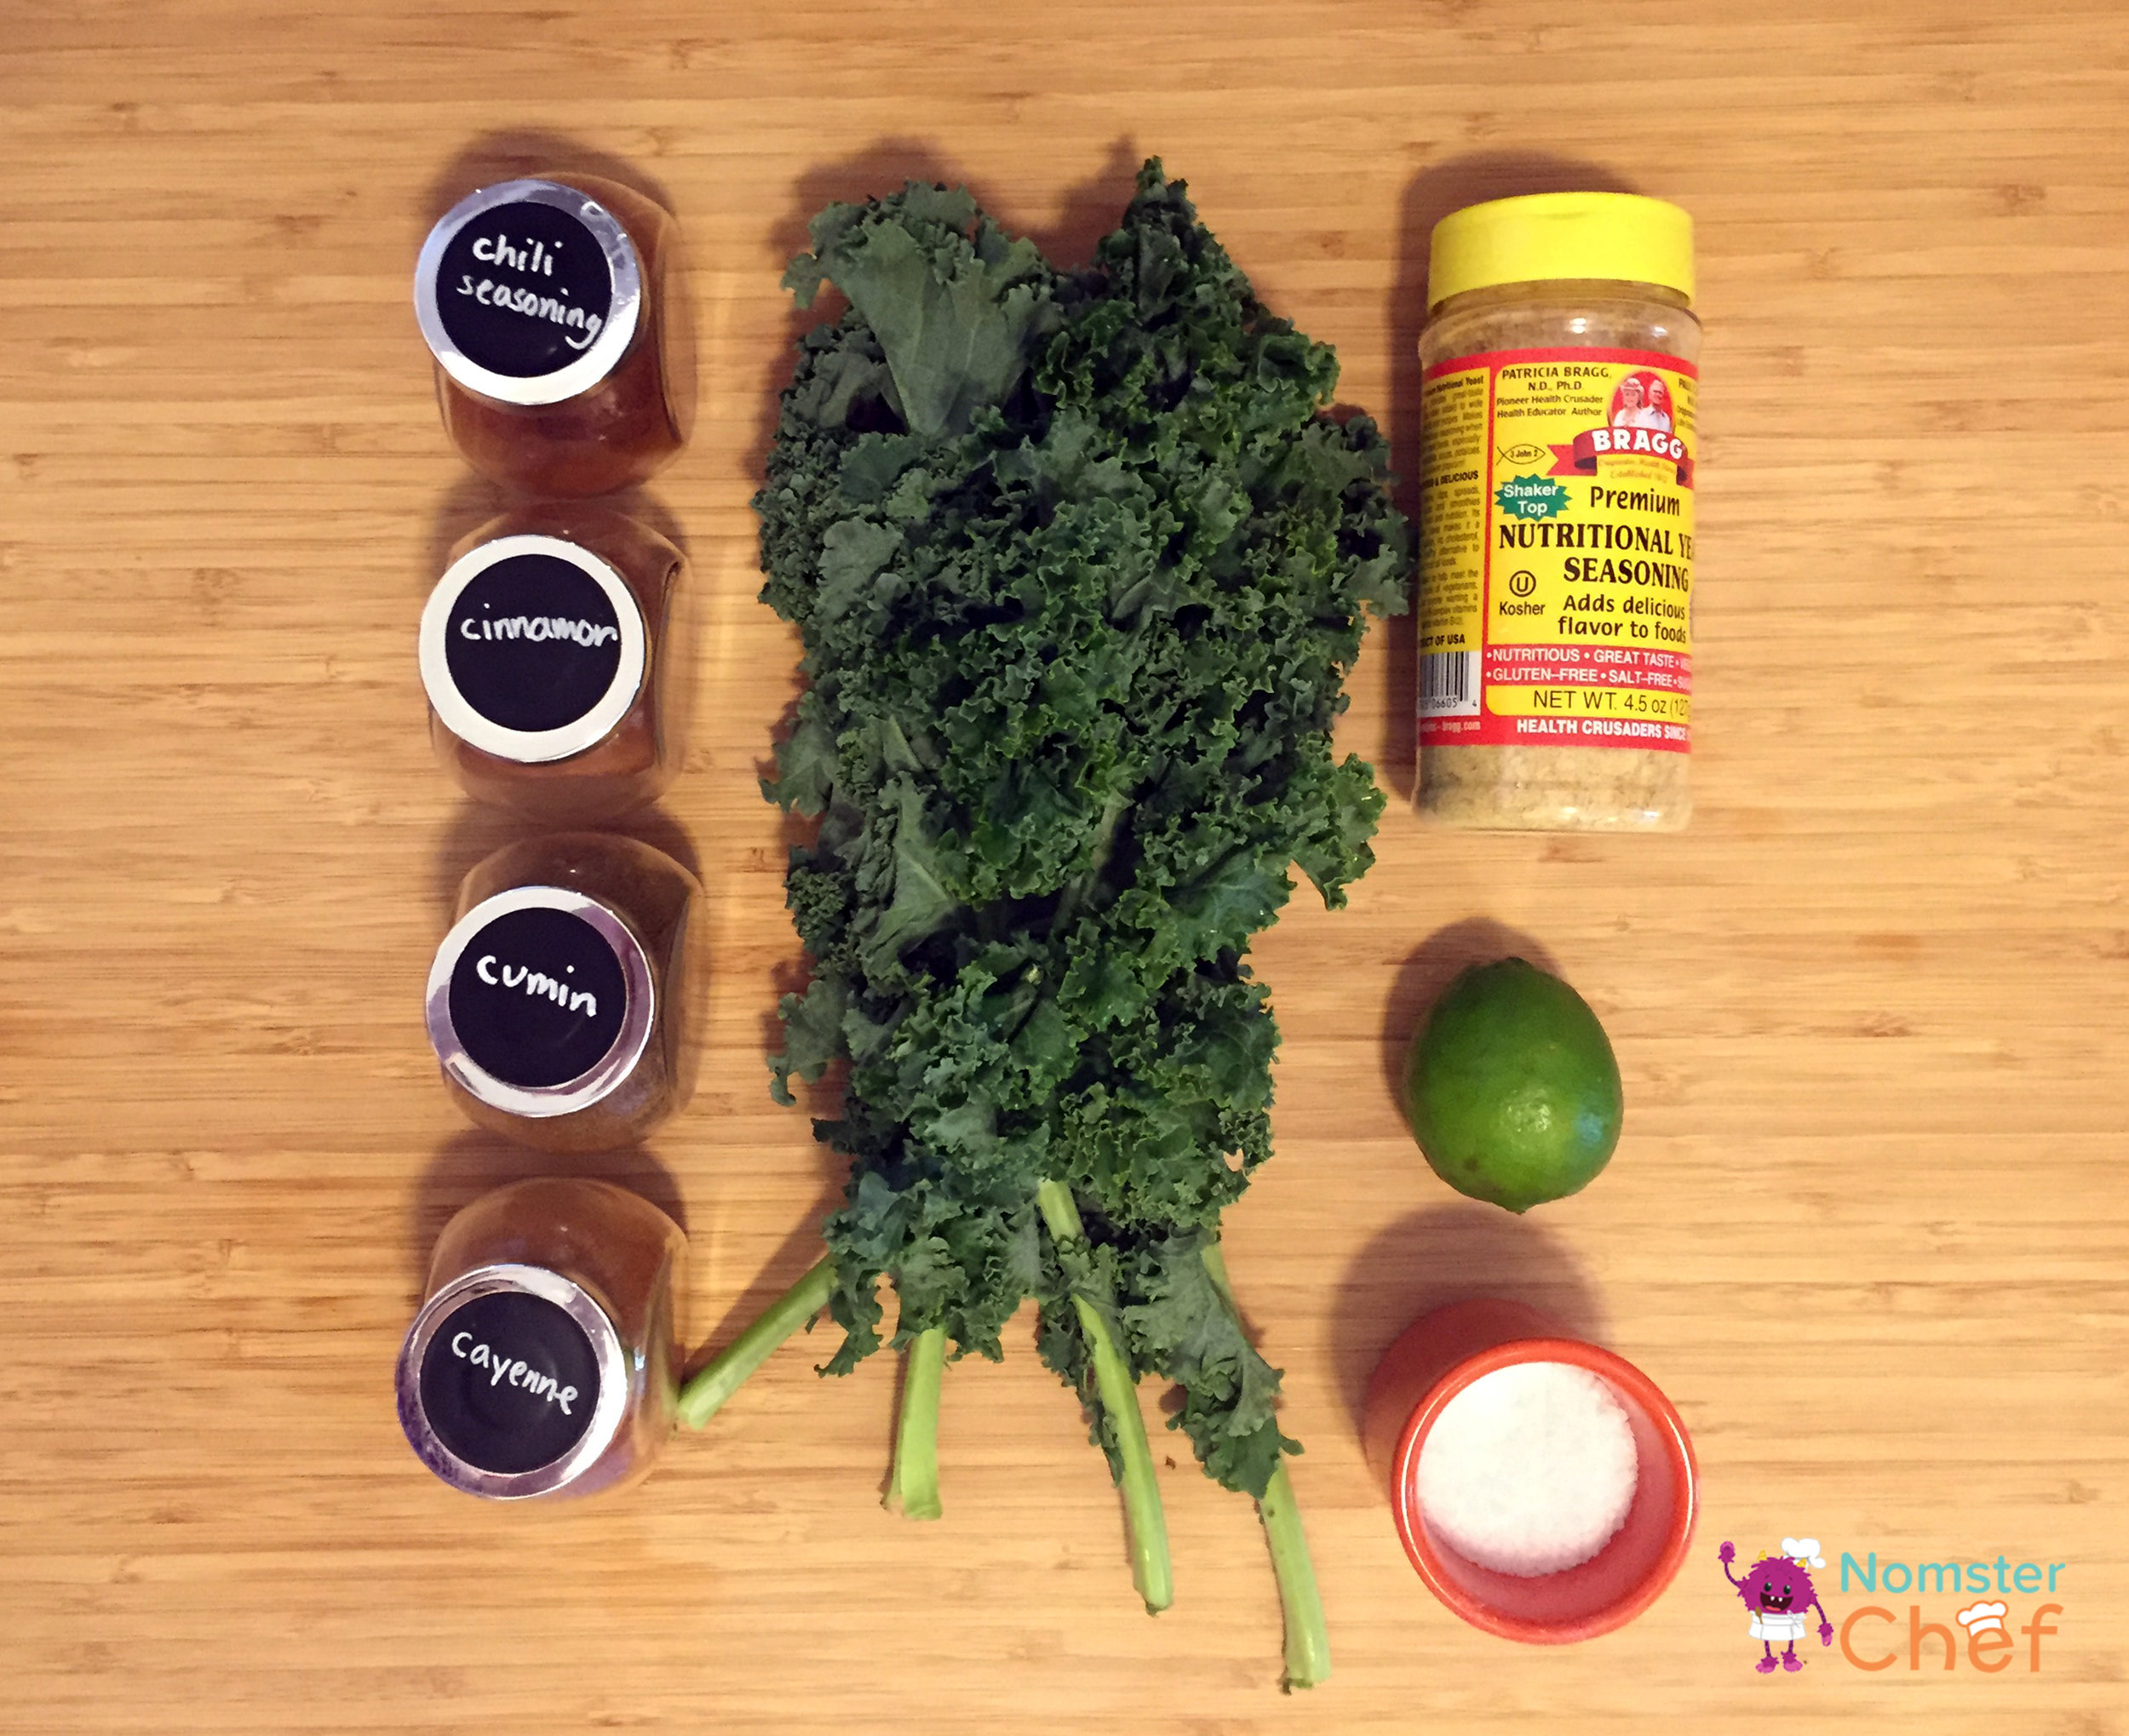 Taco kale ingredients_Food Hack Make Your Own Taco Kale Chips - Nomster Chef Blog Recipe